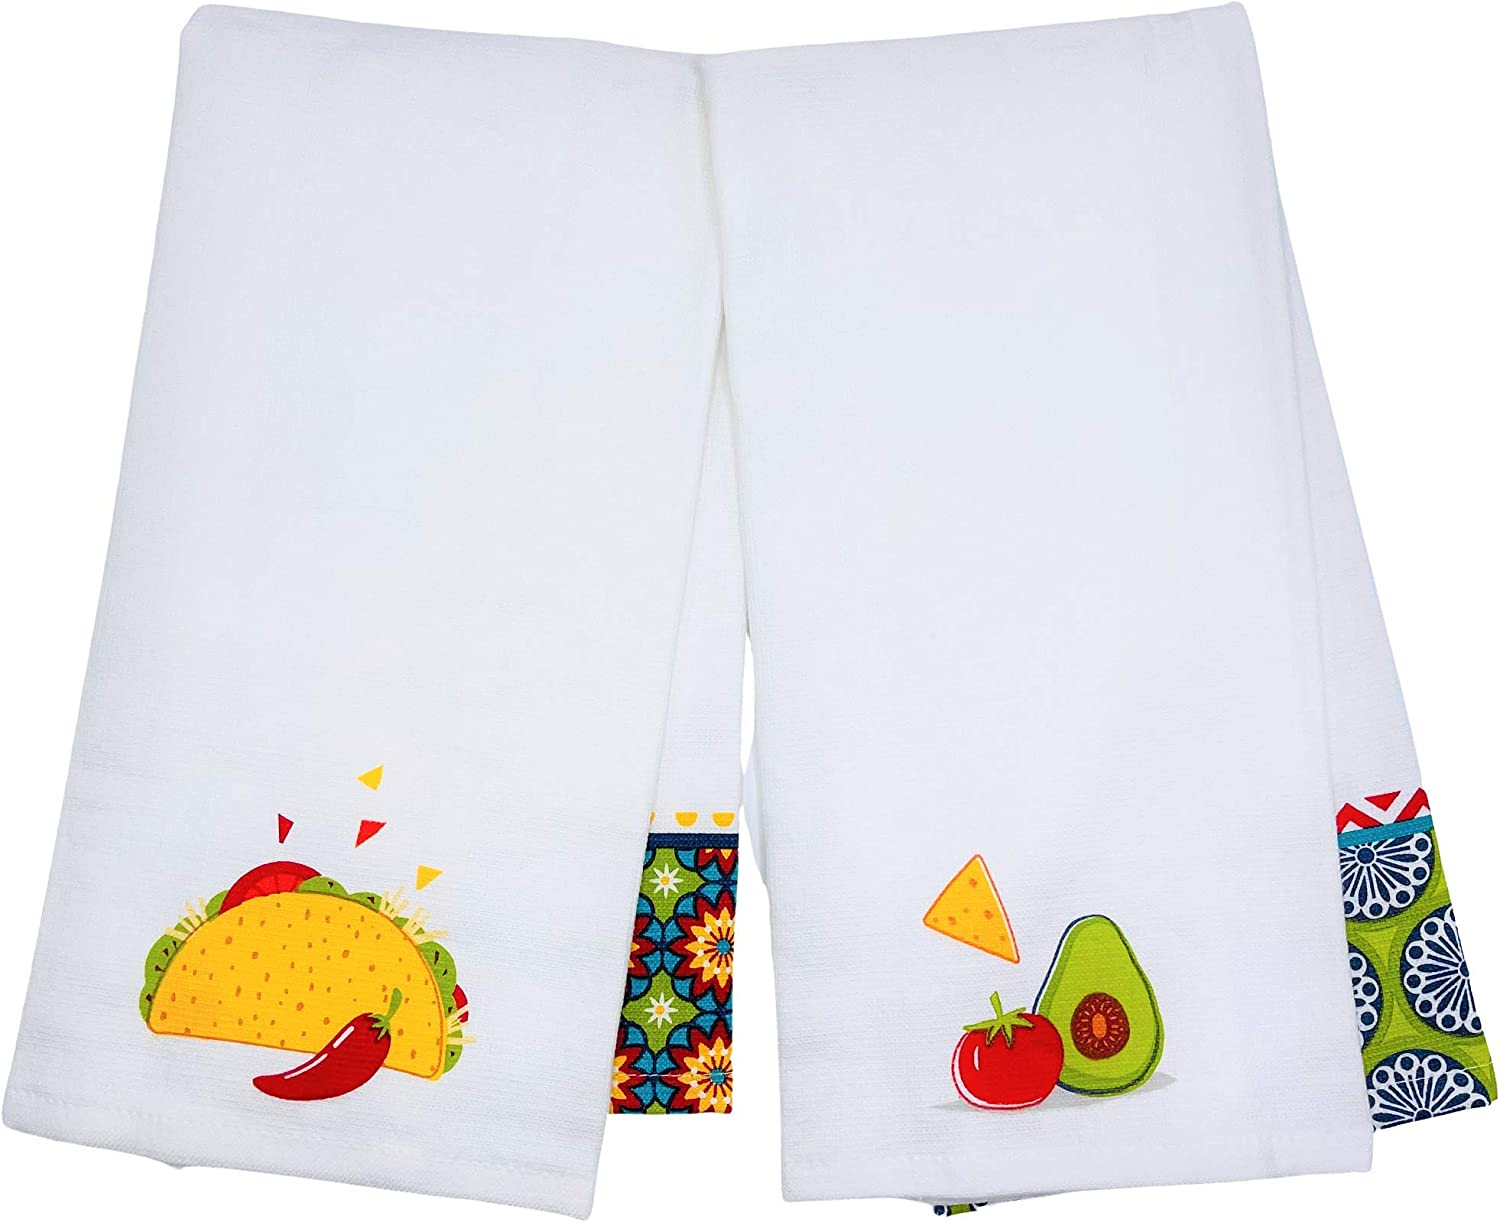 Live Like Every Day is Taco Tuesday /& You Guac My World Kitchen Towels Set of 2 Colorful Guacamole /& Taco Fiesta Kitchen Towels with Vibrant Mexican Geometric Art